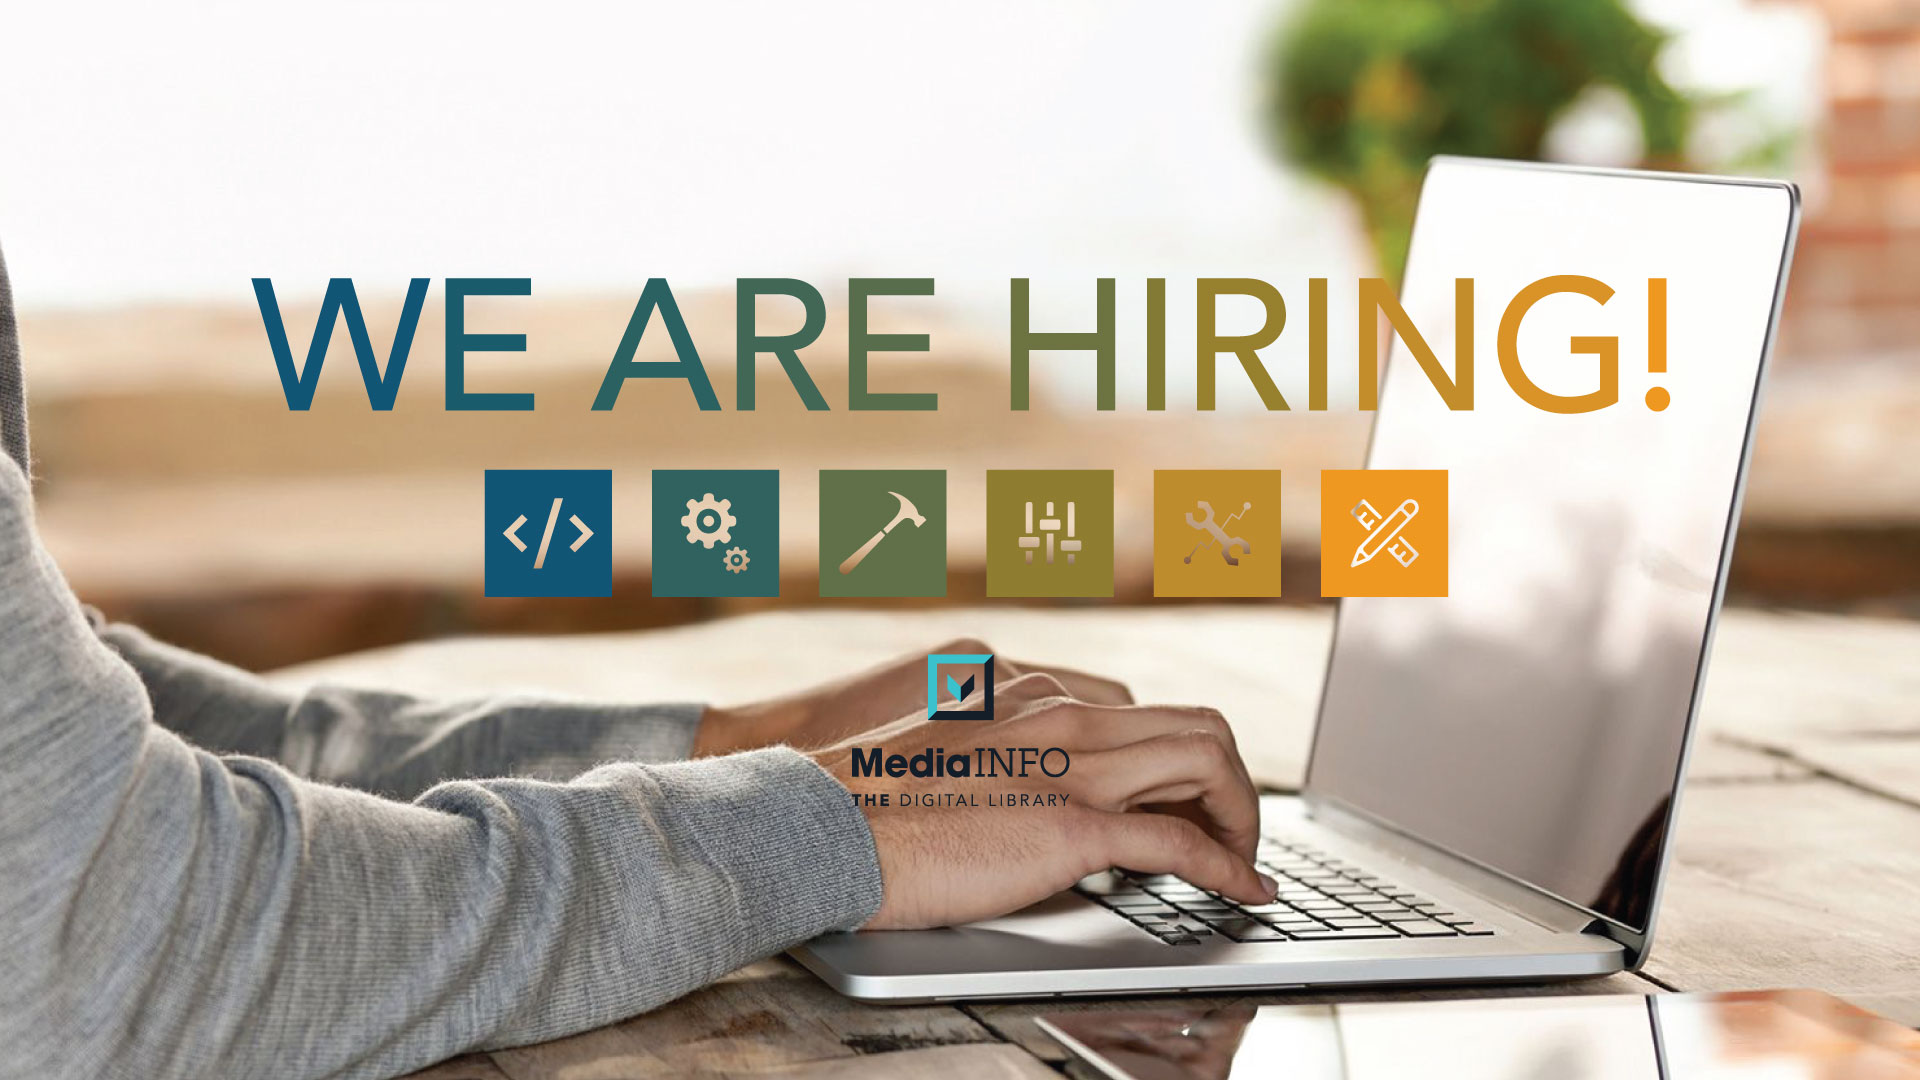 JOBS · We are hiring! - CLOSED